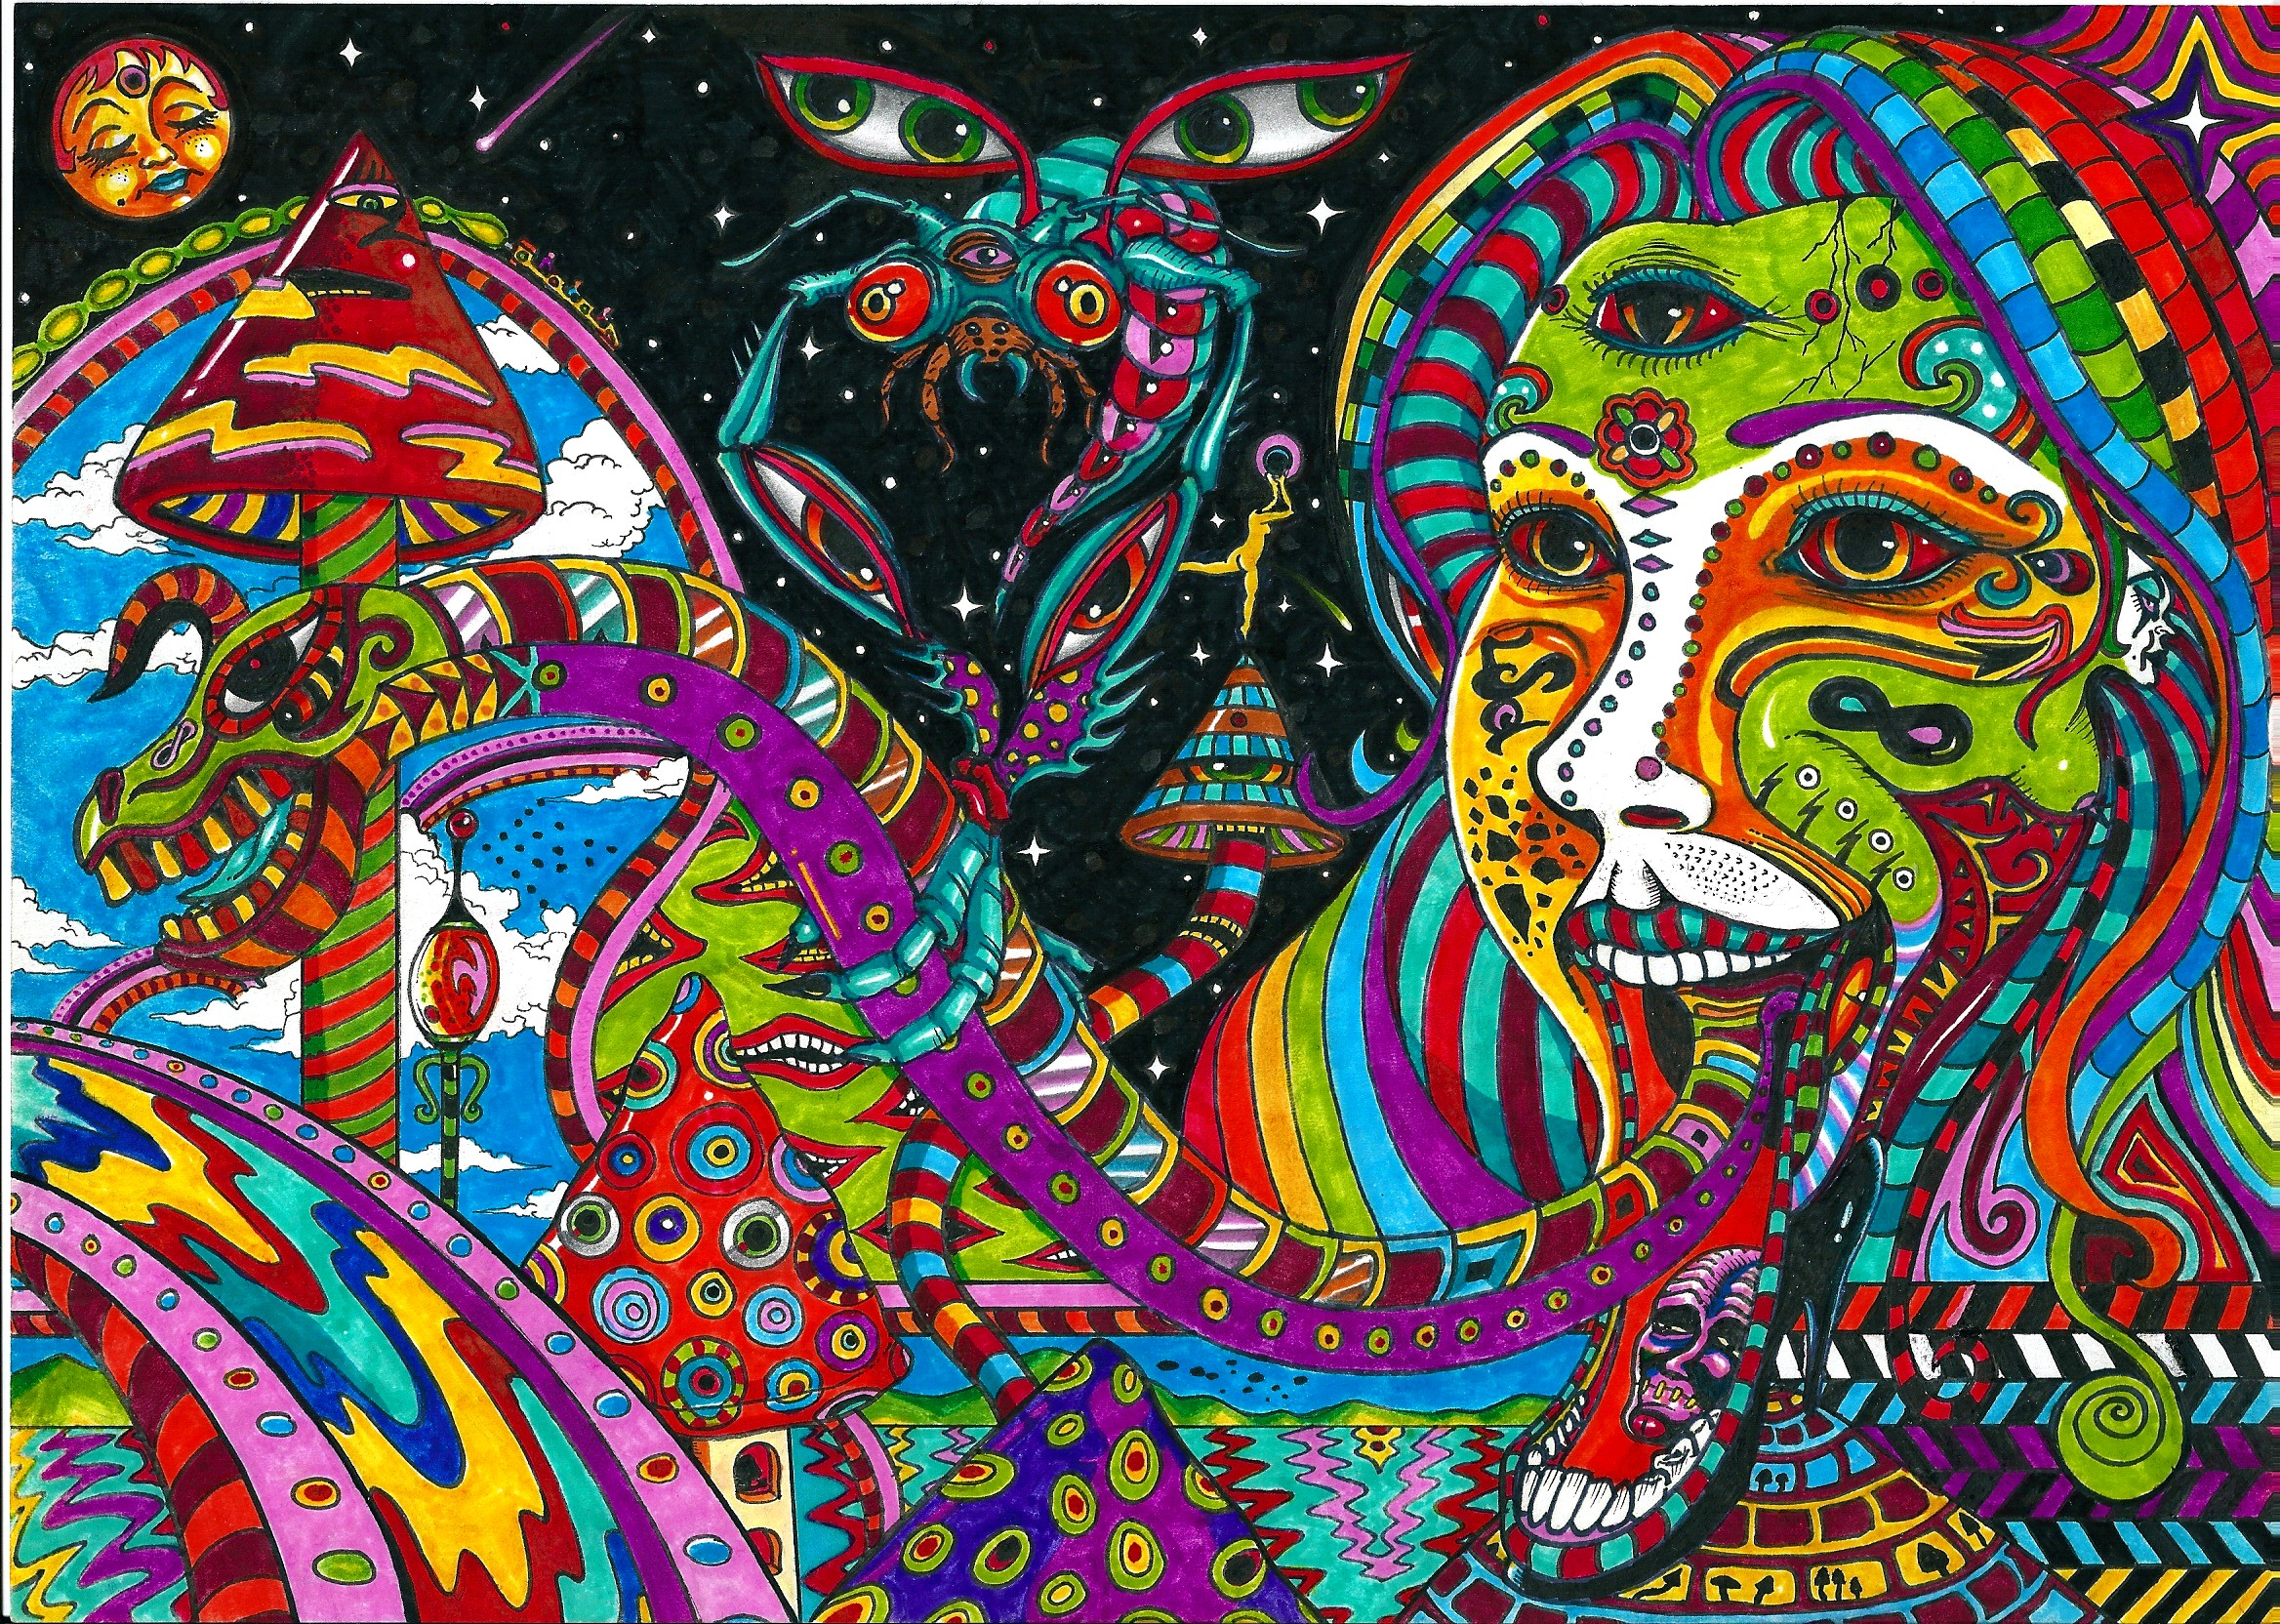 titre by acid flo traditional art drawings psychedelic 2011 2015 acid 2336x1664